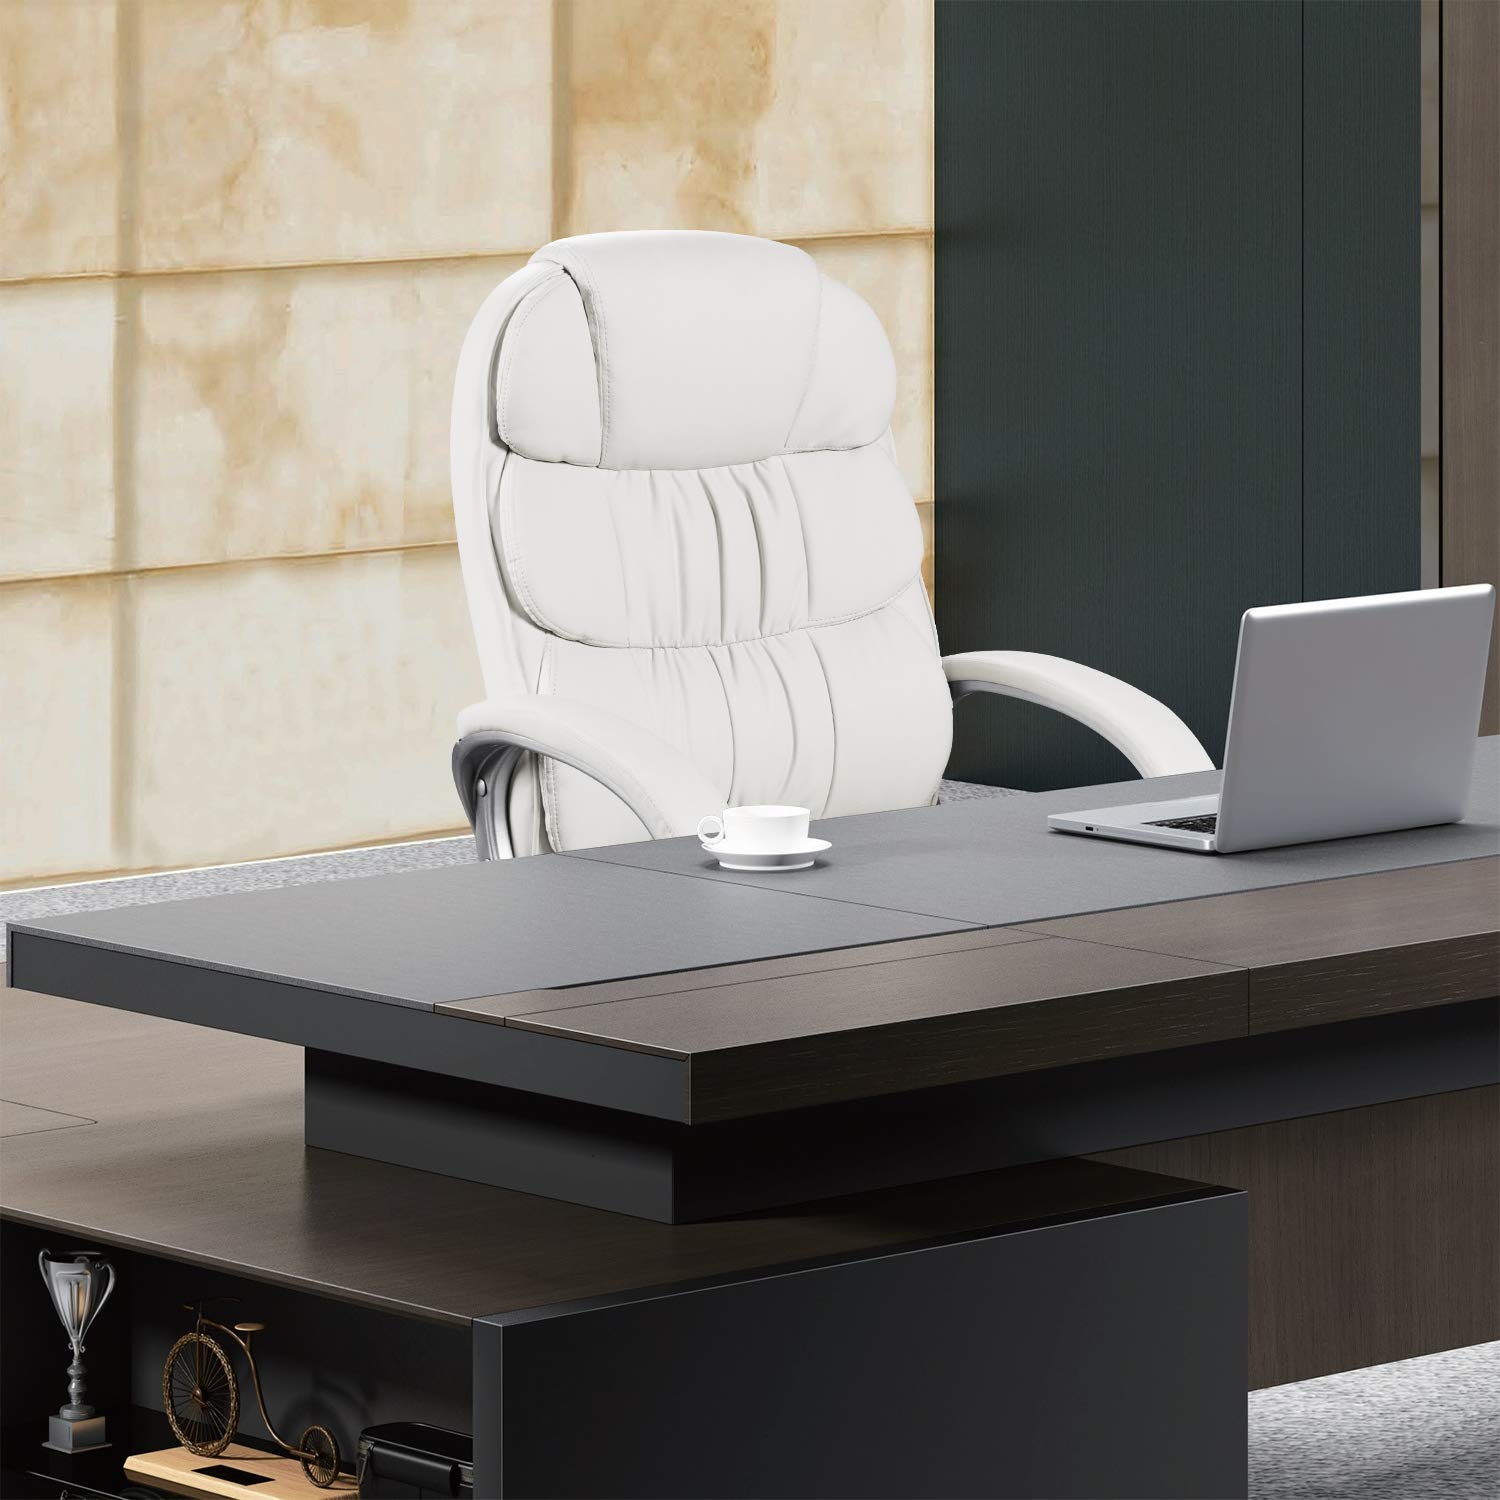 Homall Office Chair High Back Computer Desk Chair, PU Leather Adjustable Chair Ergonomic Boss Executive Management Swivel Task Chair with Padded Armrests (White) by Homall (Image #7)